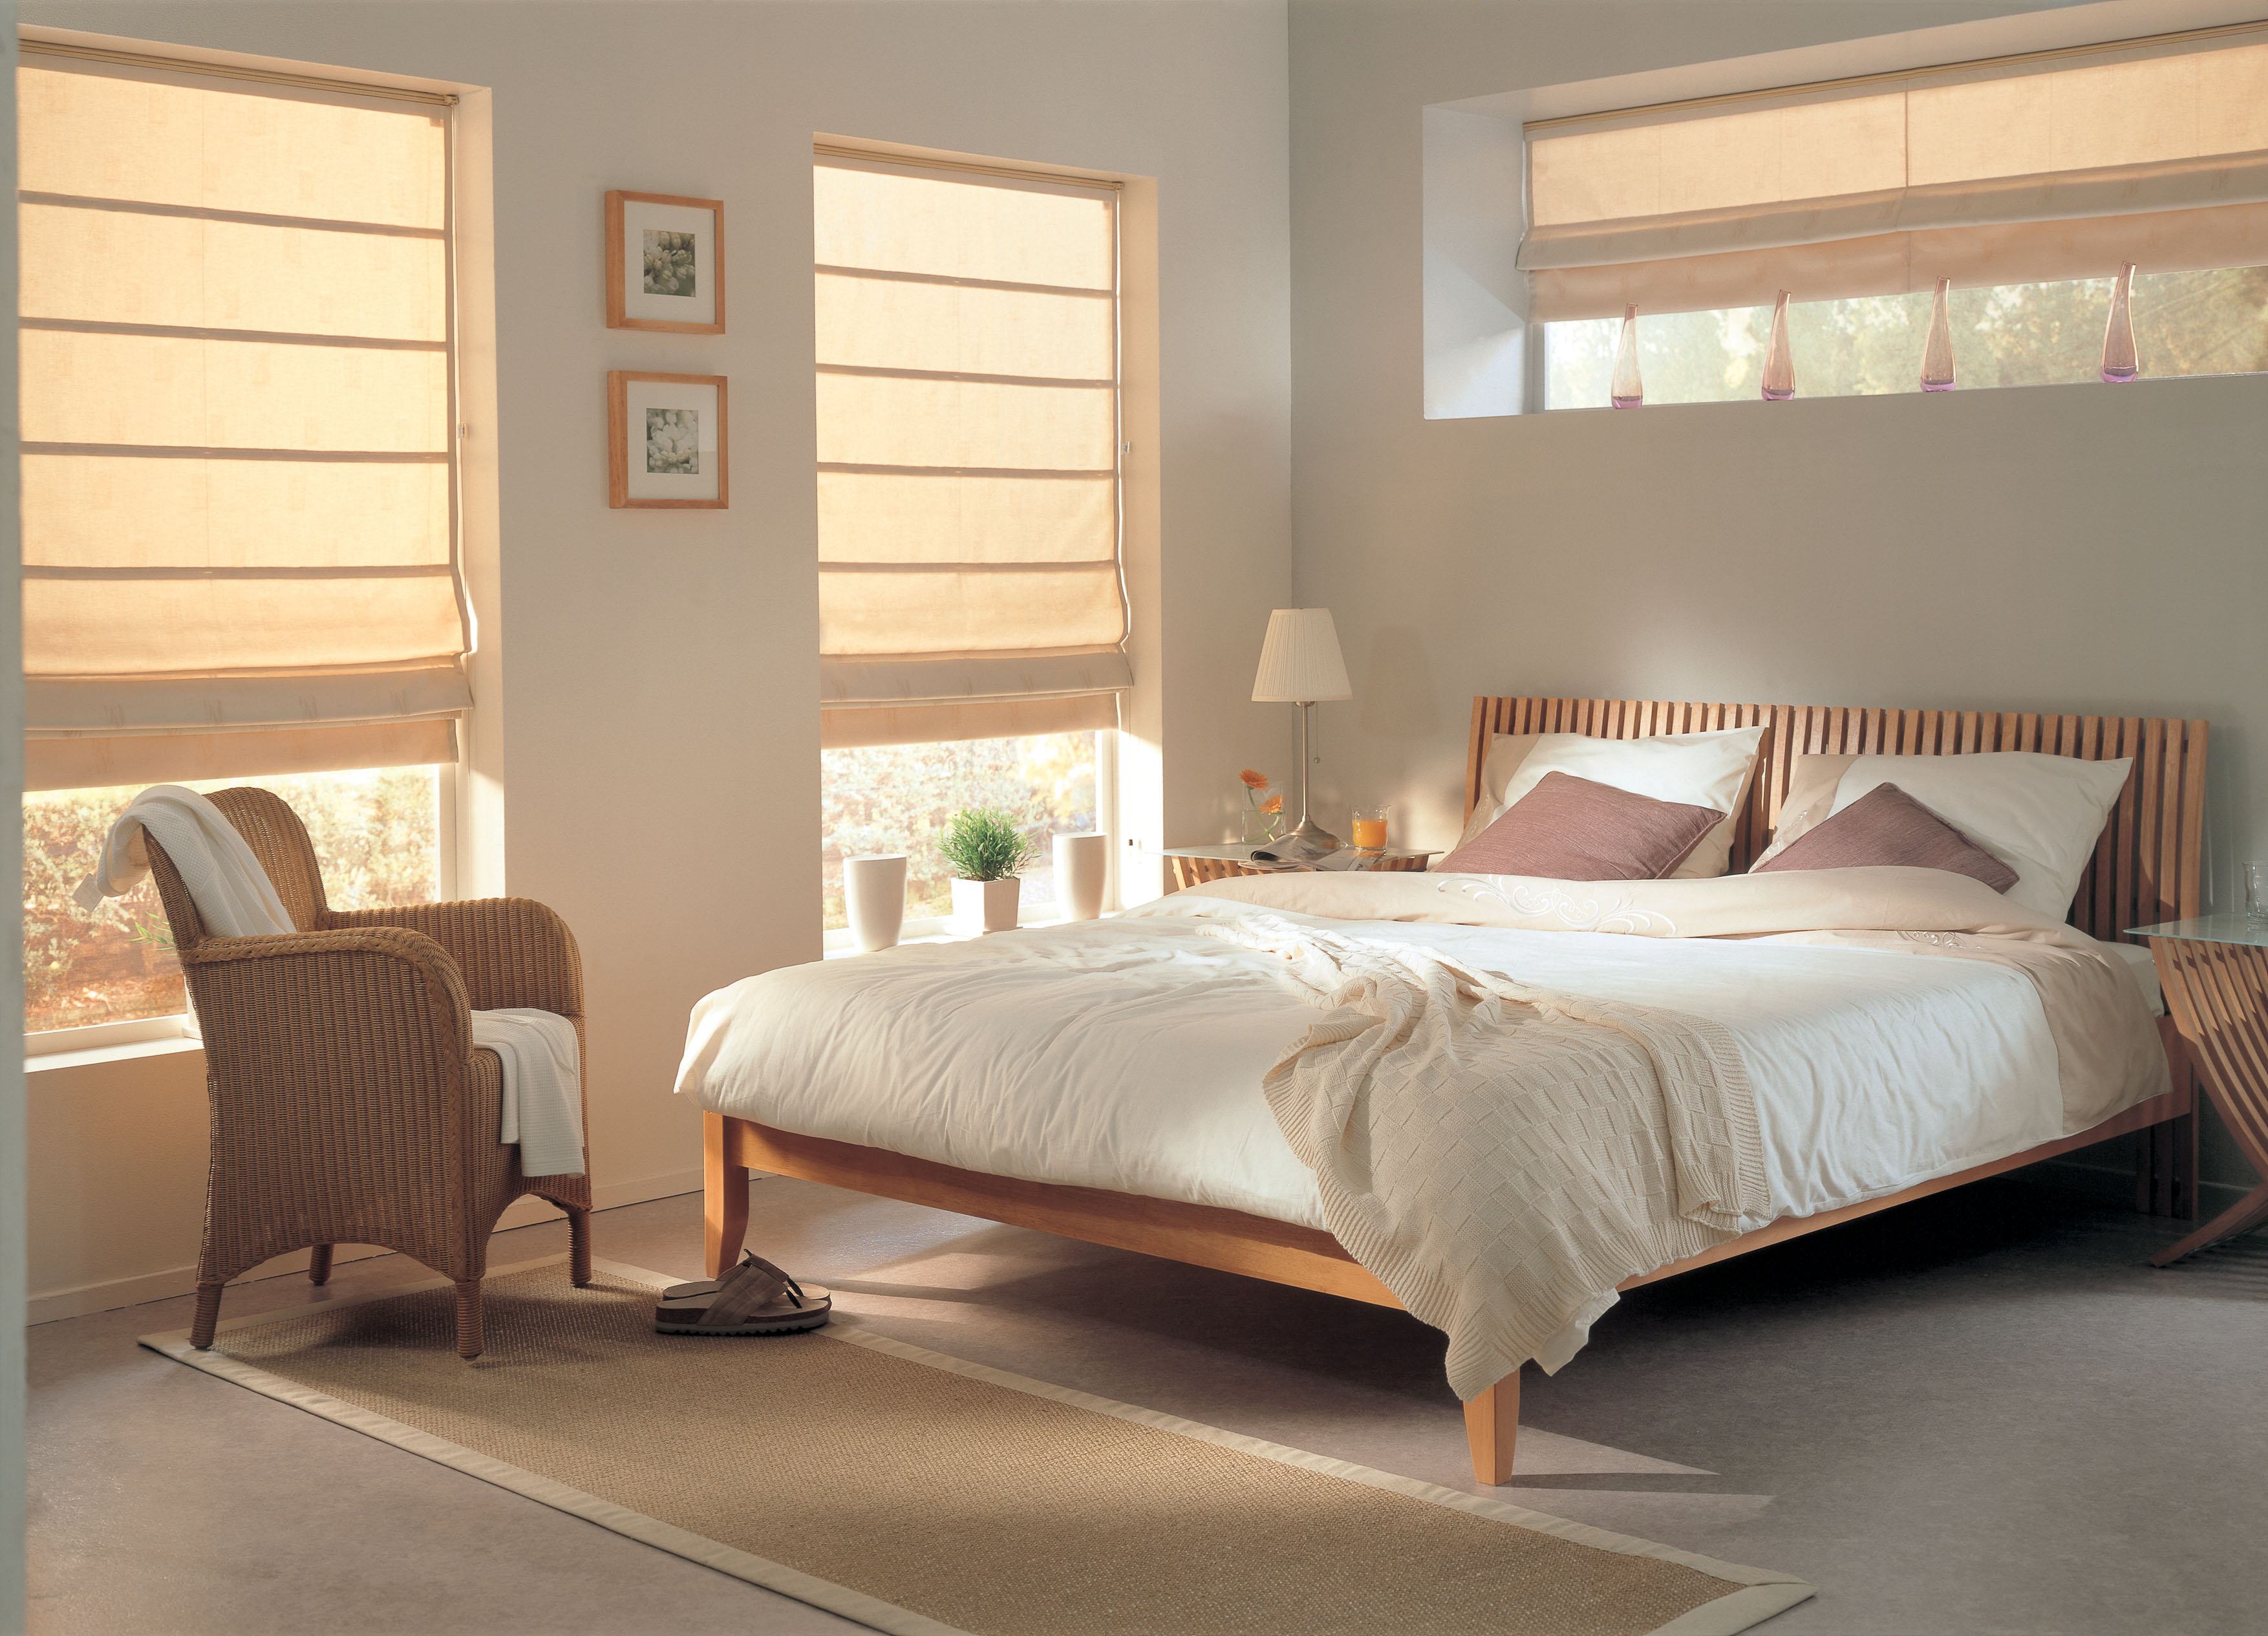 Sophisticated Spaces This Spring With Neutral Roman Blinds Roman Blinds Blog